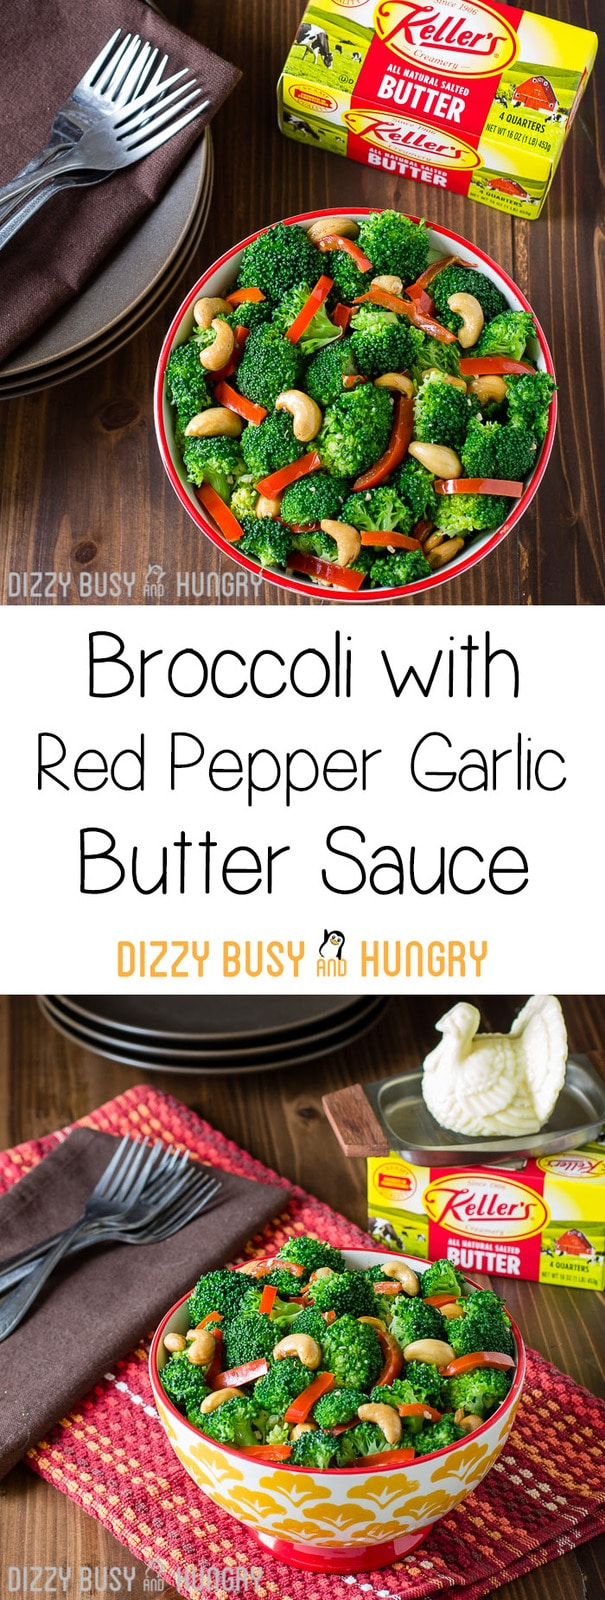 Broccoli with Red Pepper Garlic Butter Sauce   DizzyBusyandHungry.com - Broccoli side dish with a delicious buttery sauce infused with the flavors of fresh red peppers and garlic and combined with the crunchiness of cashews!